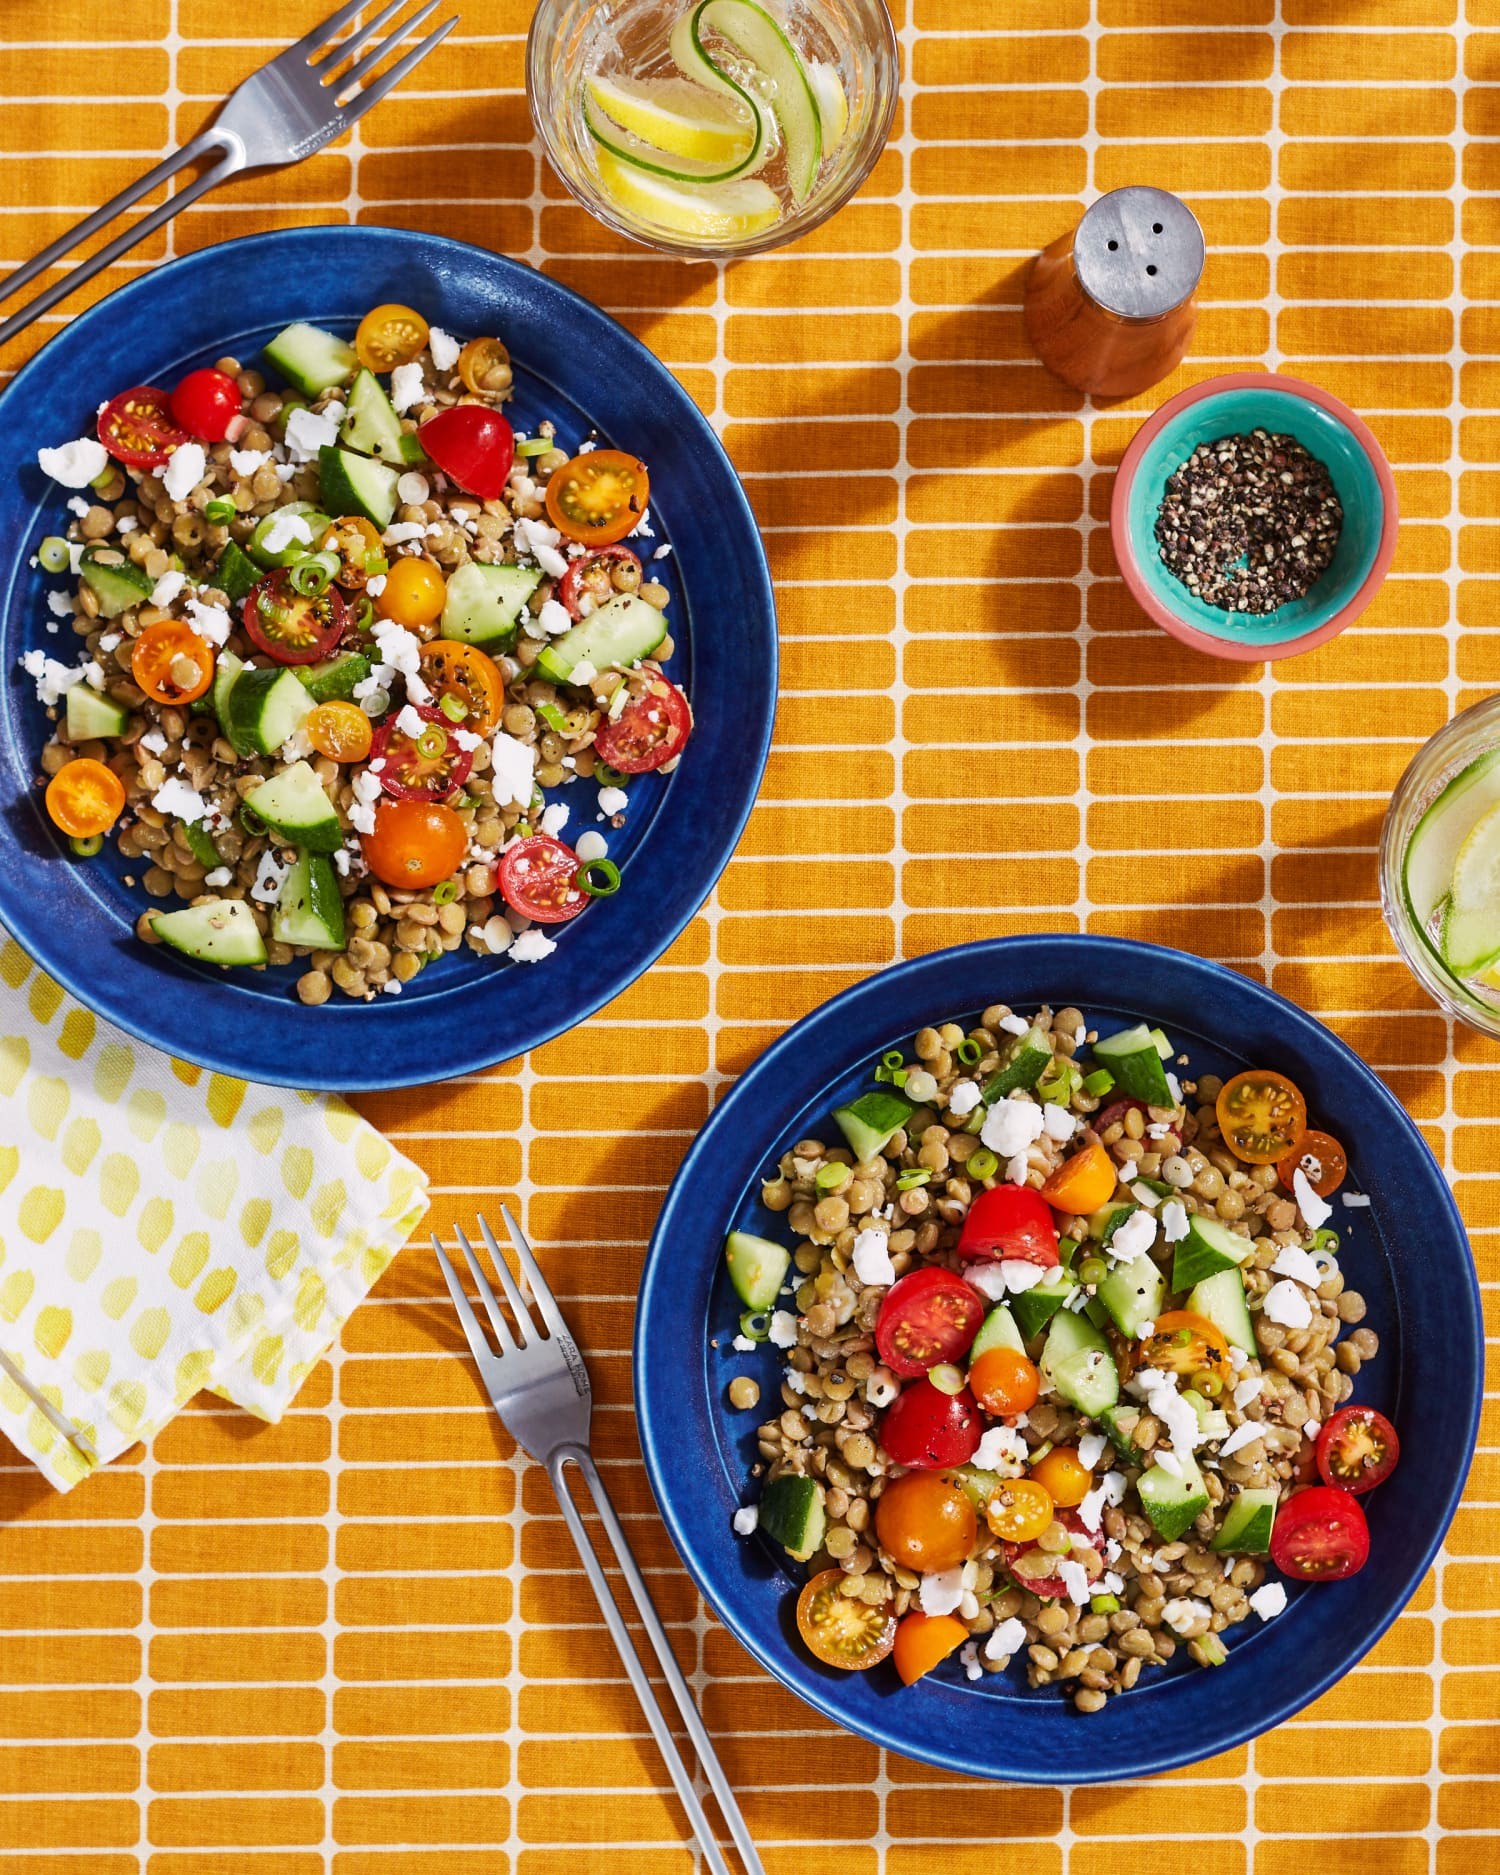 Marinated Lentils and Dairy-Free Feta Crumbles Star in This Fresh, Flavor-Packed Salad